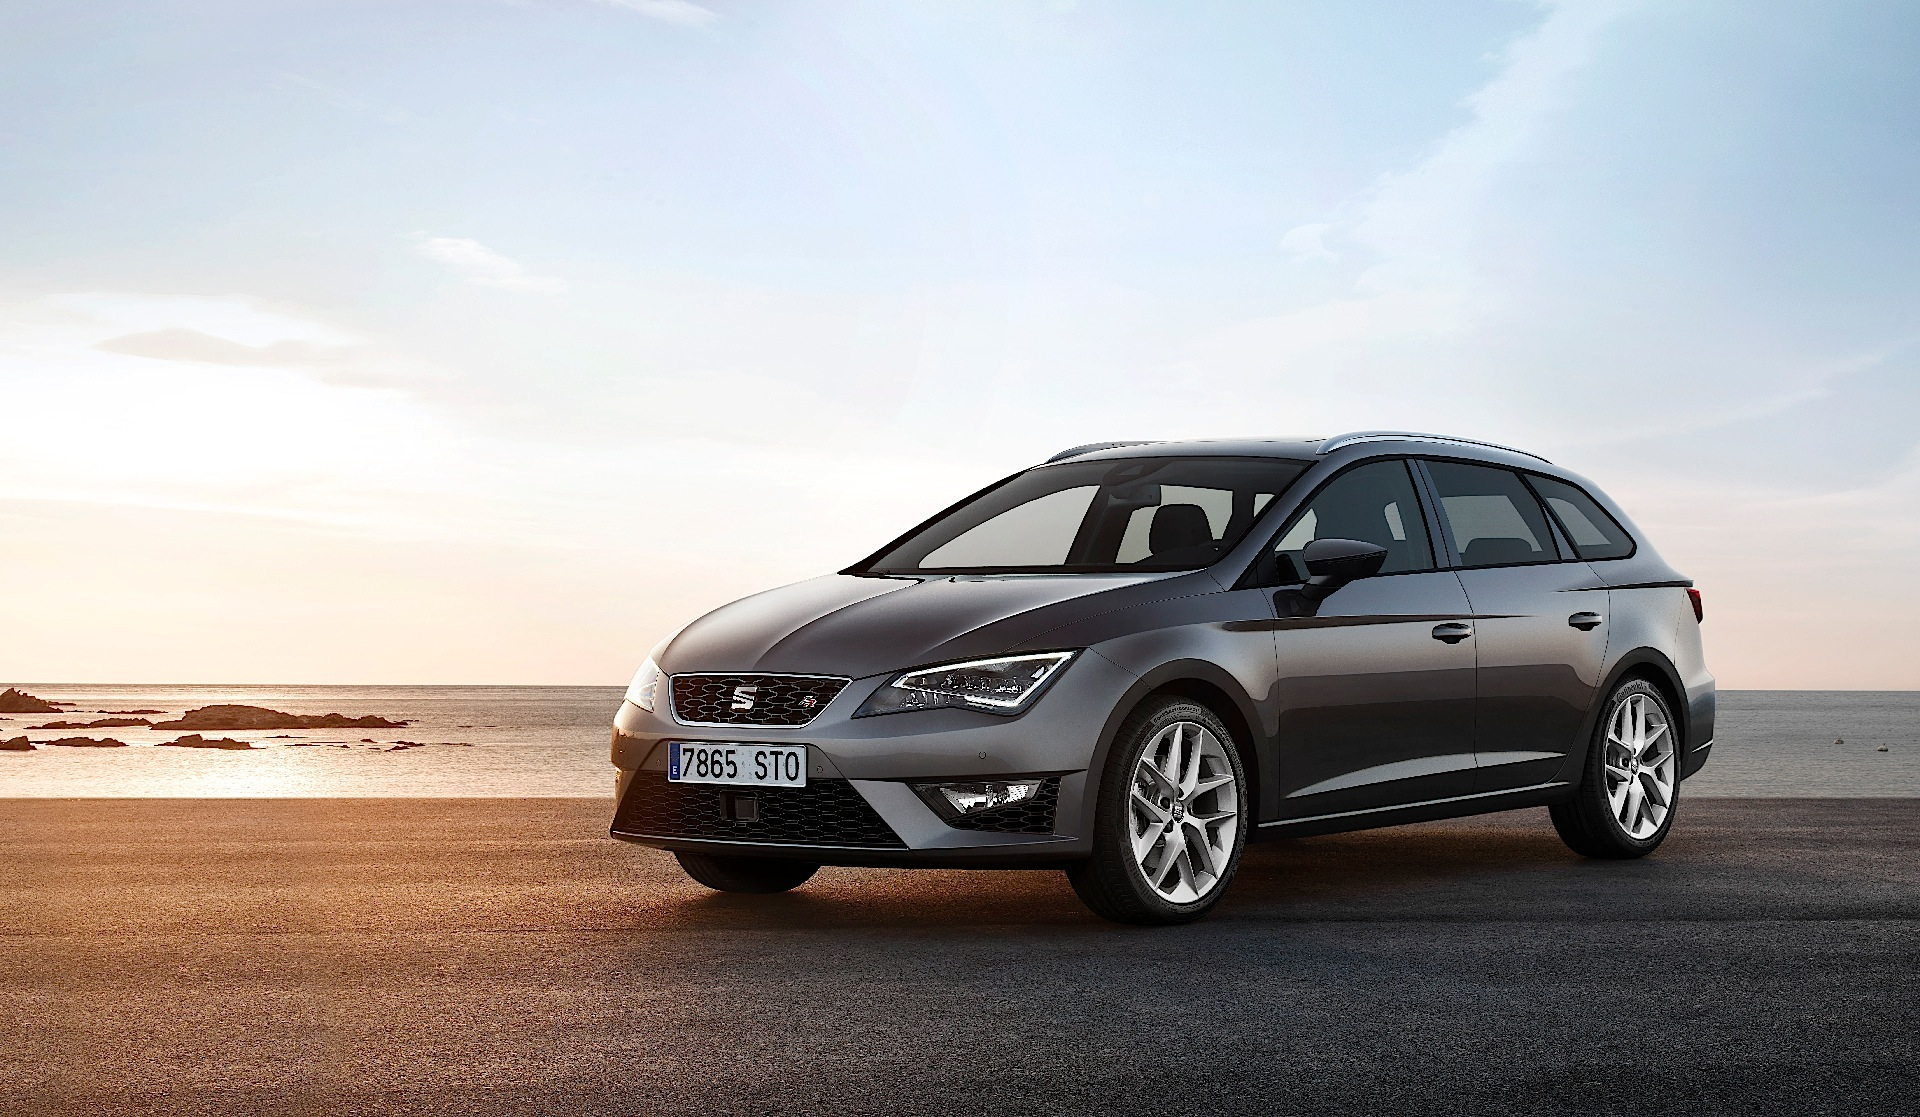 seat leon st estate specs photos 2013 2014 2015 2016 2017 2018 2019 autoevolution. Black Bedroom Furniture Sets. Home Design Ideas